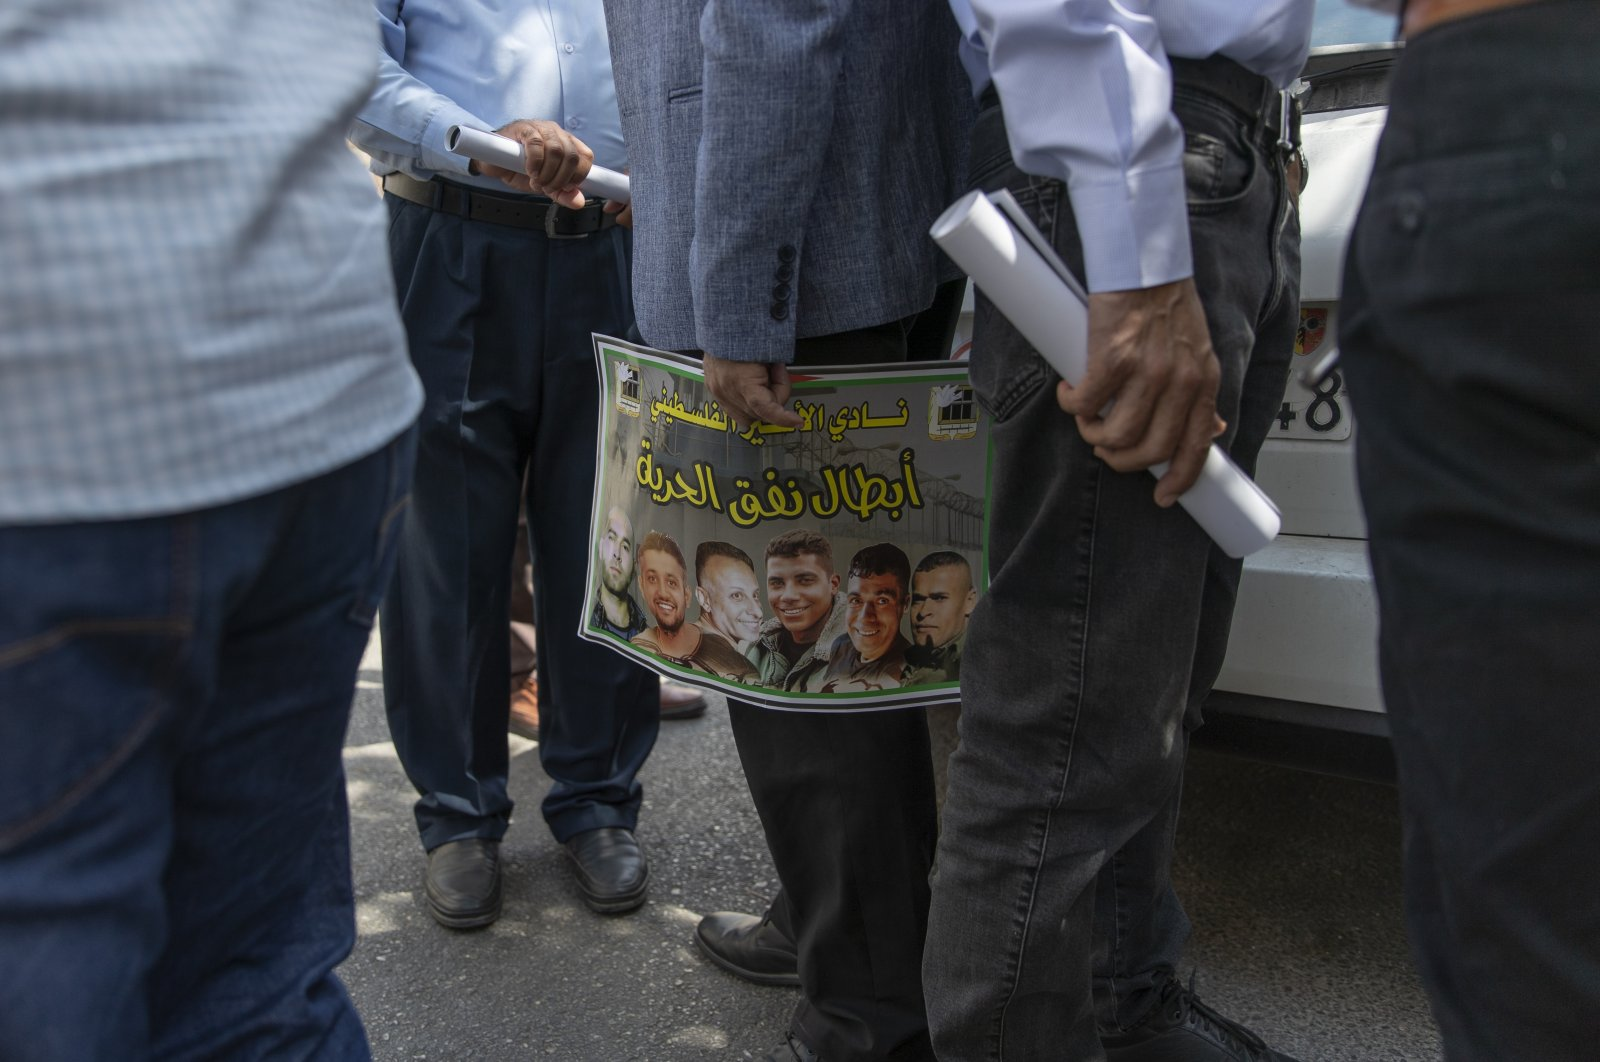 """A Palestinian man carries a poster with pictures of the six Palestinian prisoners who escaped from an Israeli jail that says """"heroes of the freedom tunnel,"""" during a protest supporting prisoners, in the occupied West Bank city of Ramallah, Palestine, Sept. 14, 2021. (AP Photo)"""